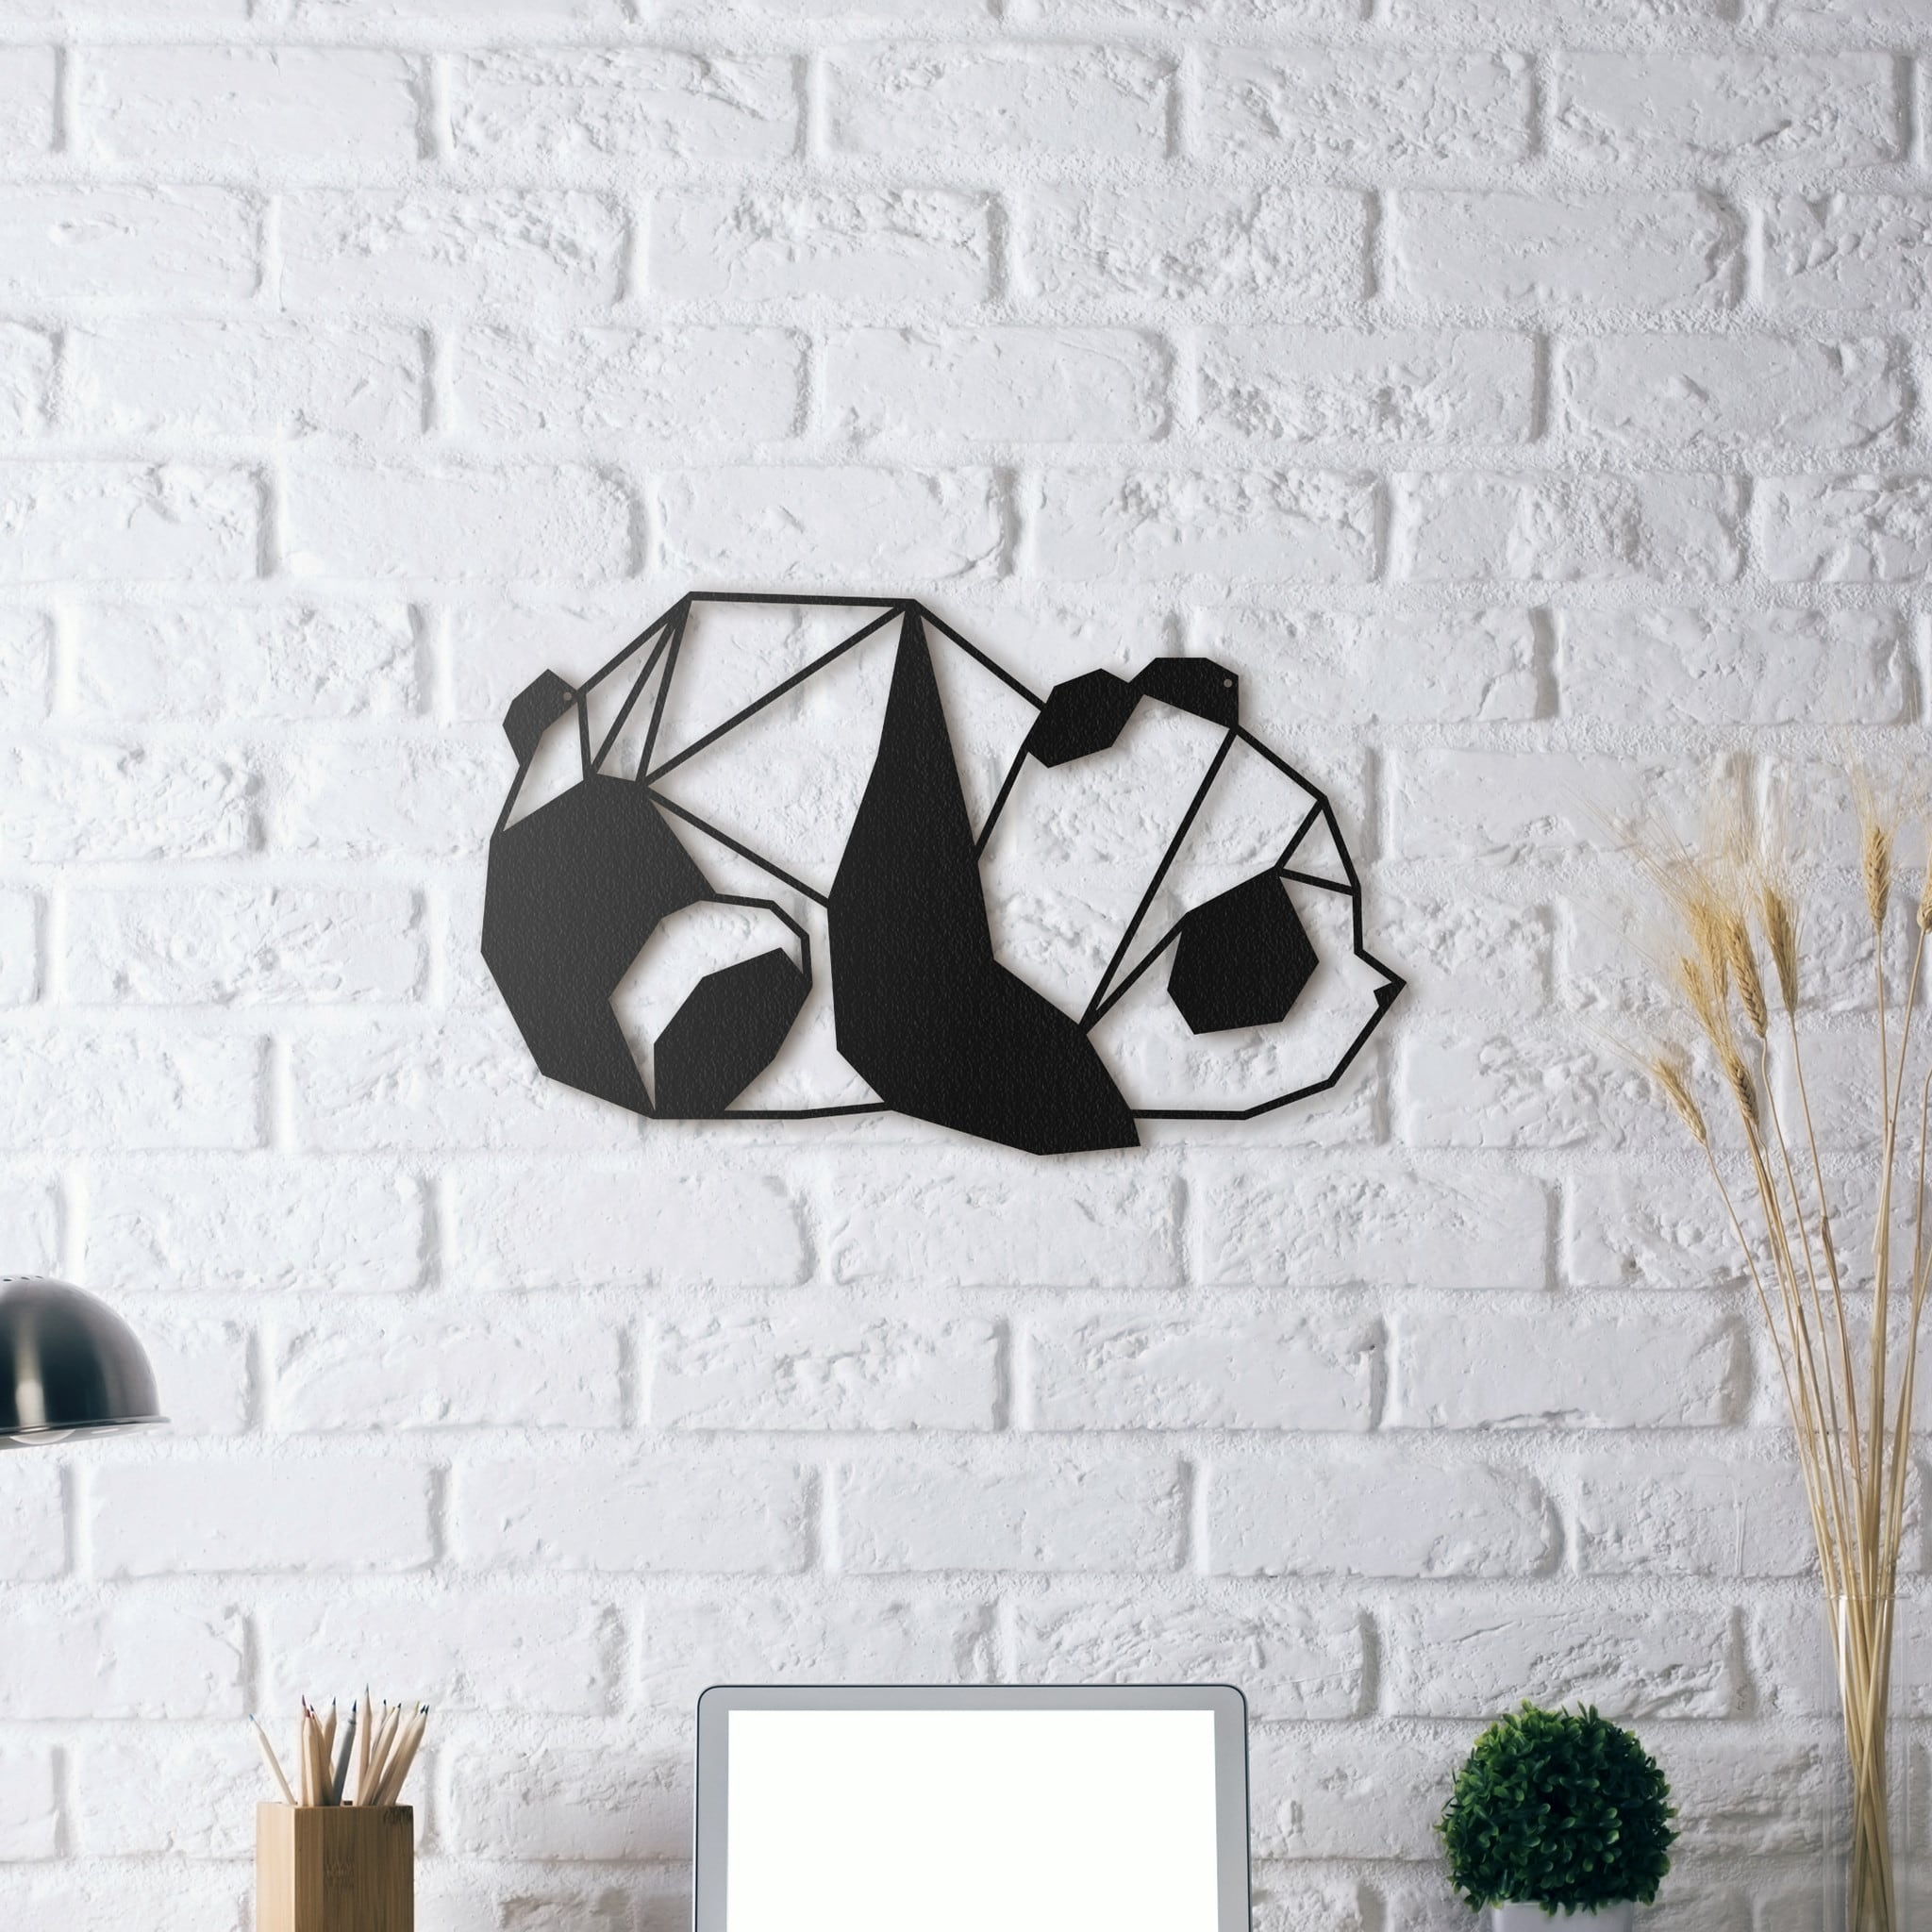 Metal wall decoration of a panda for a contemporary interior